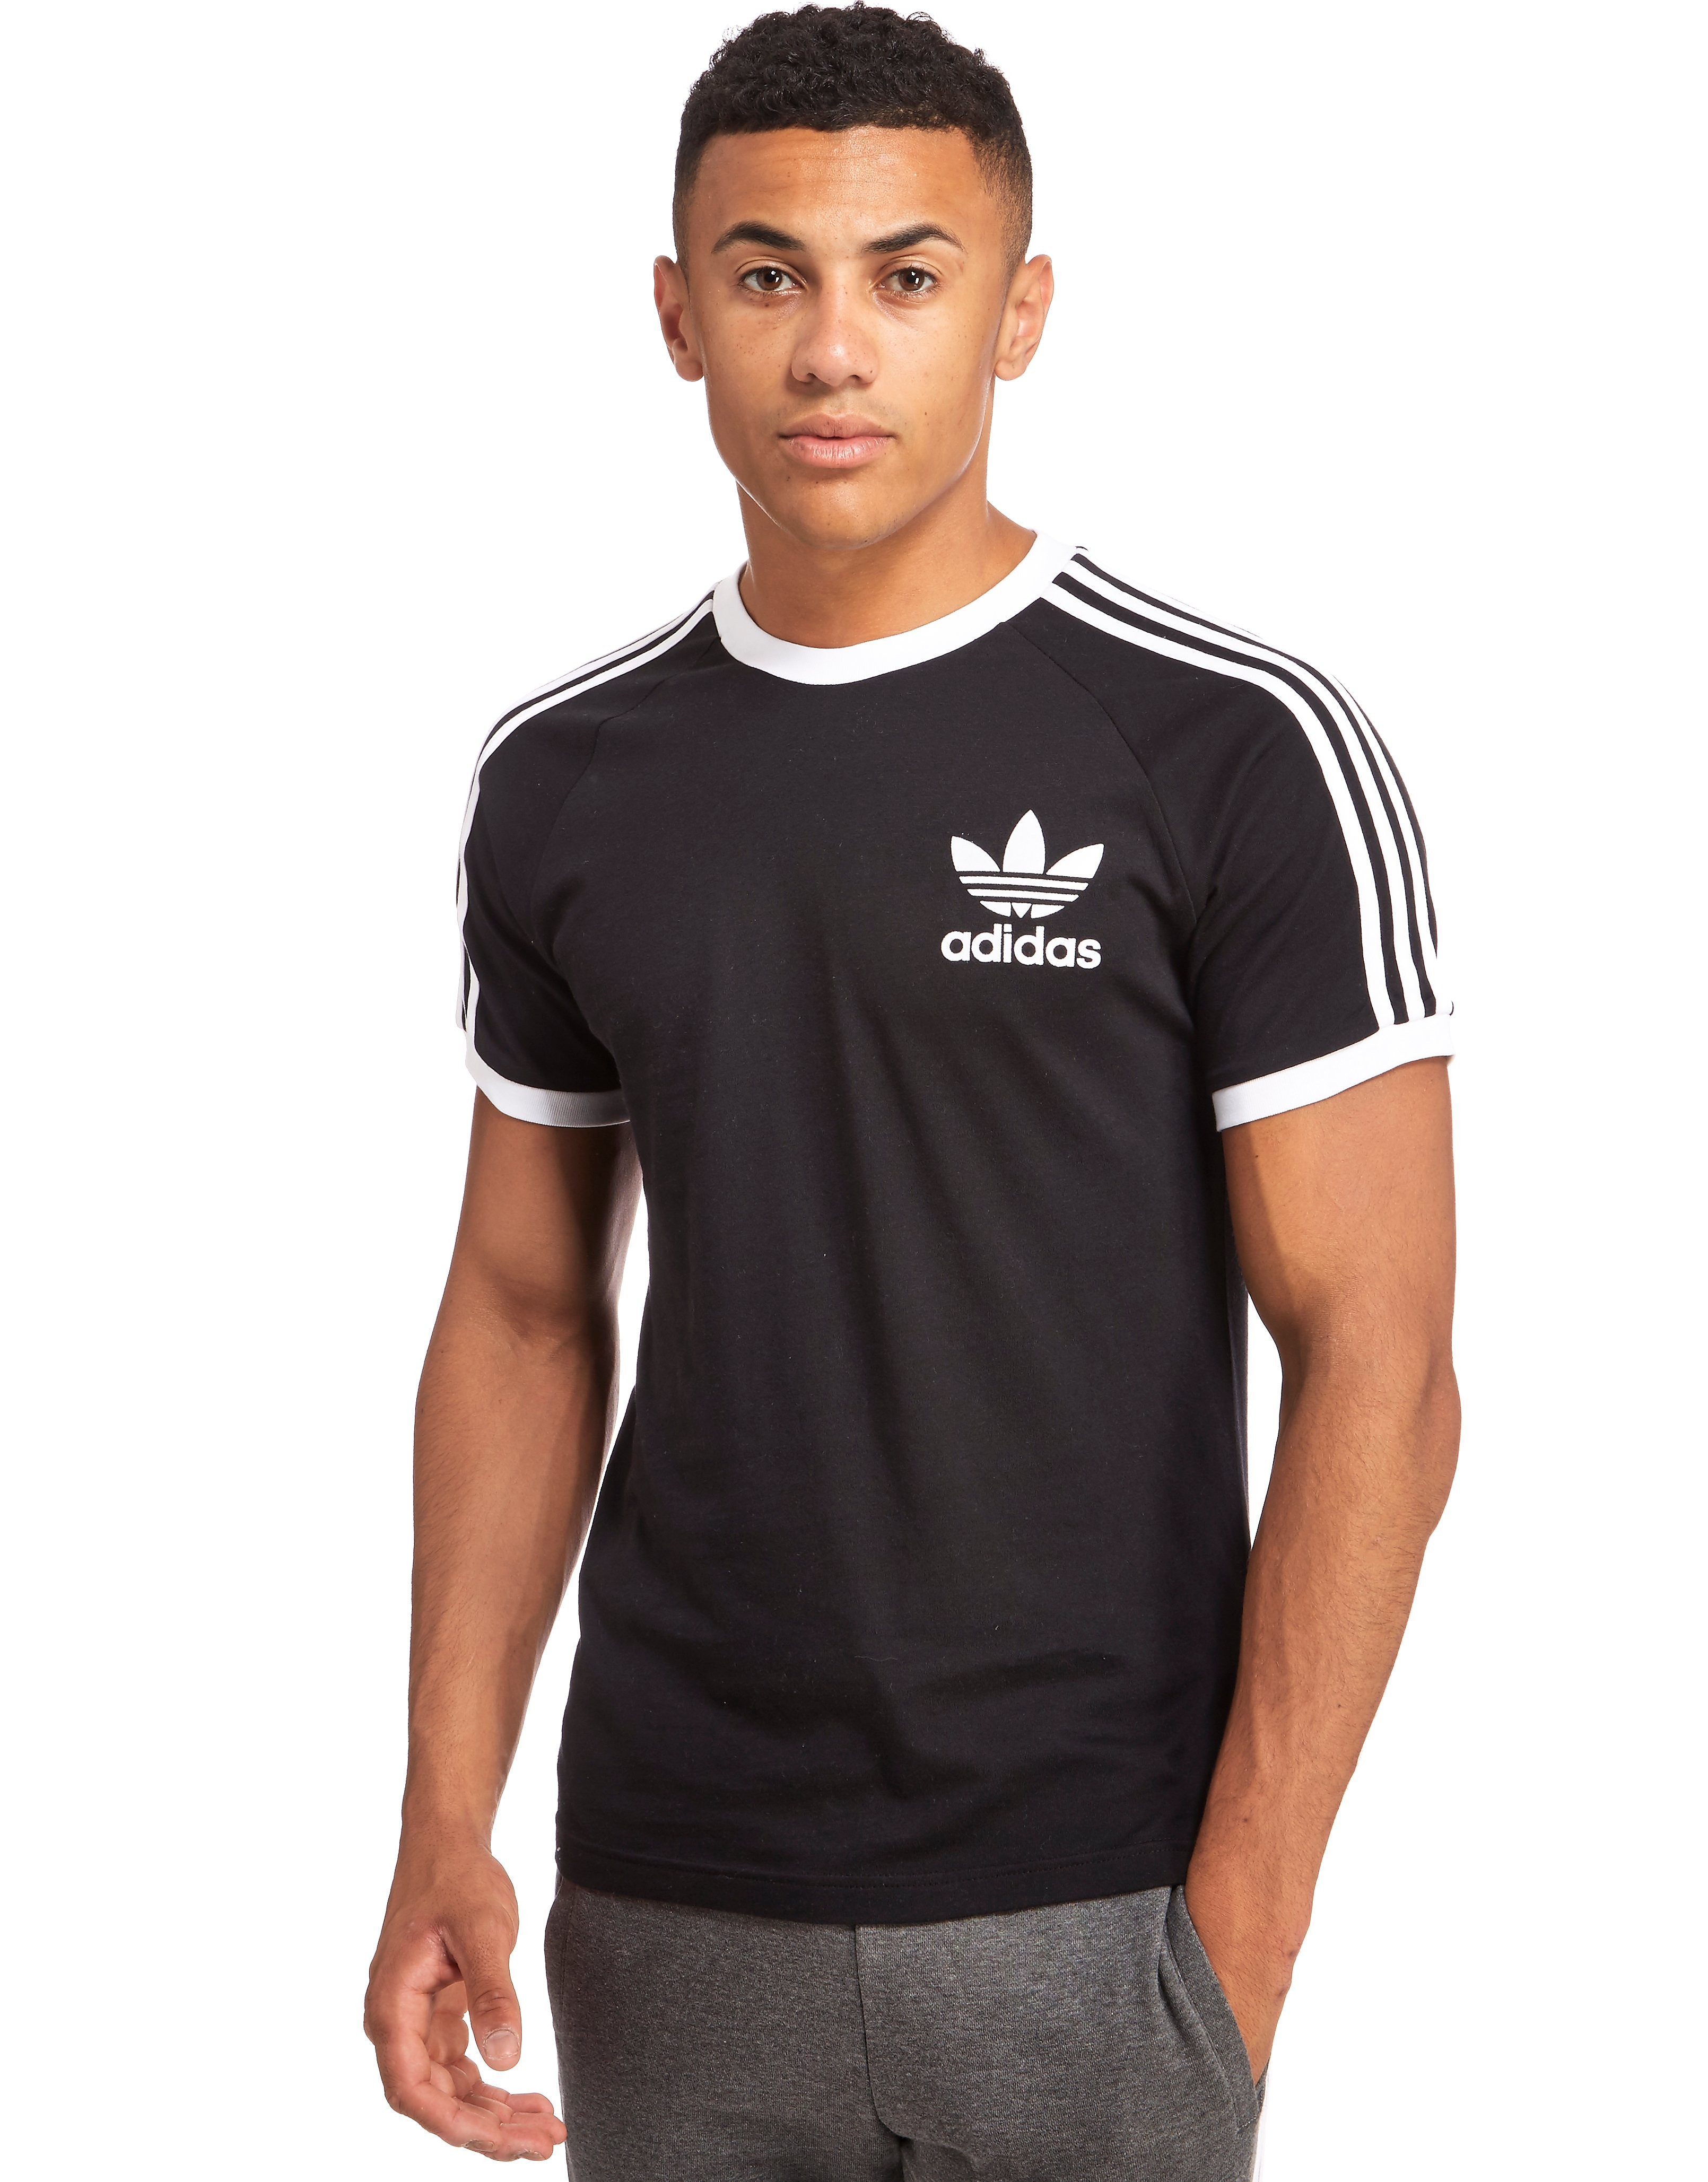 adidas Originals camiseta California